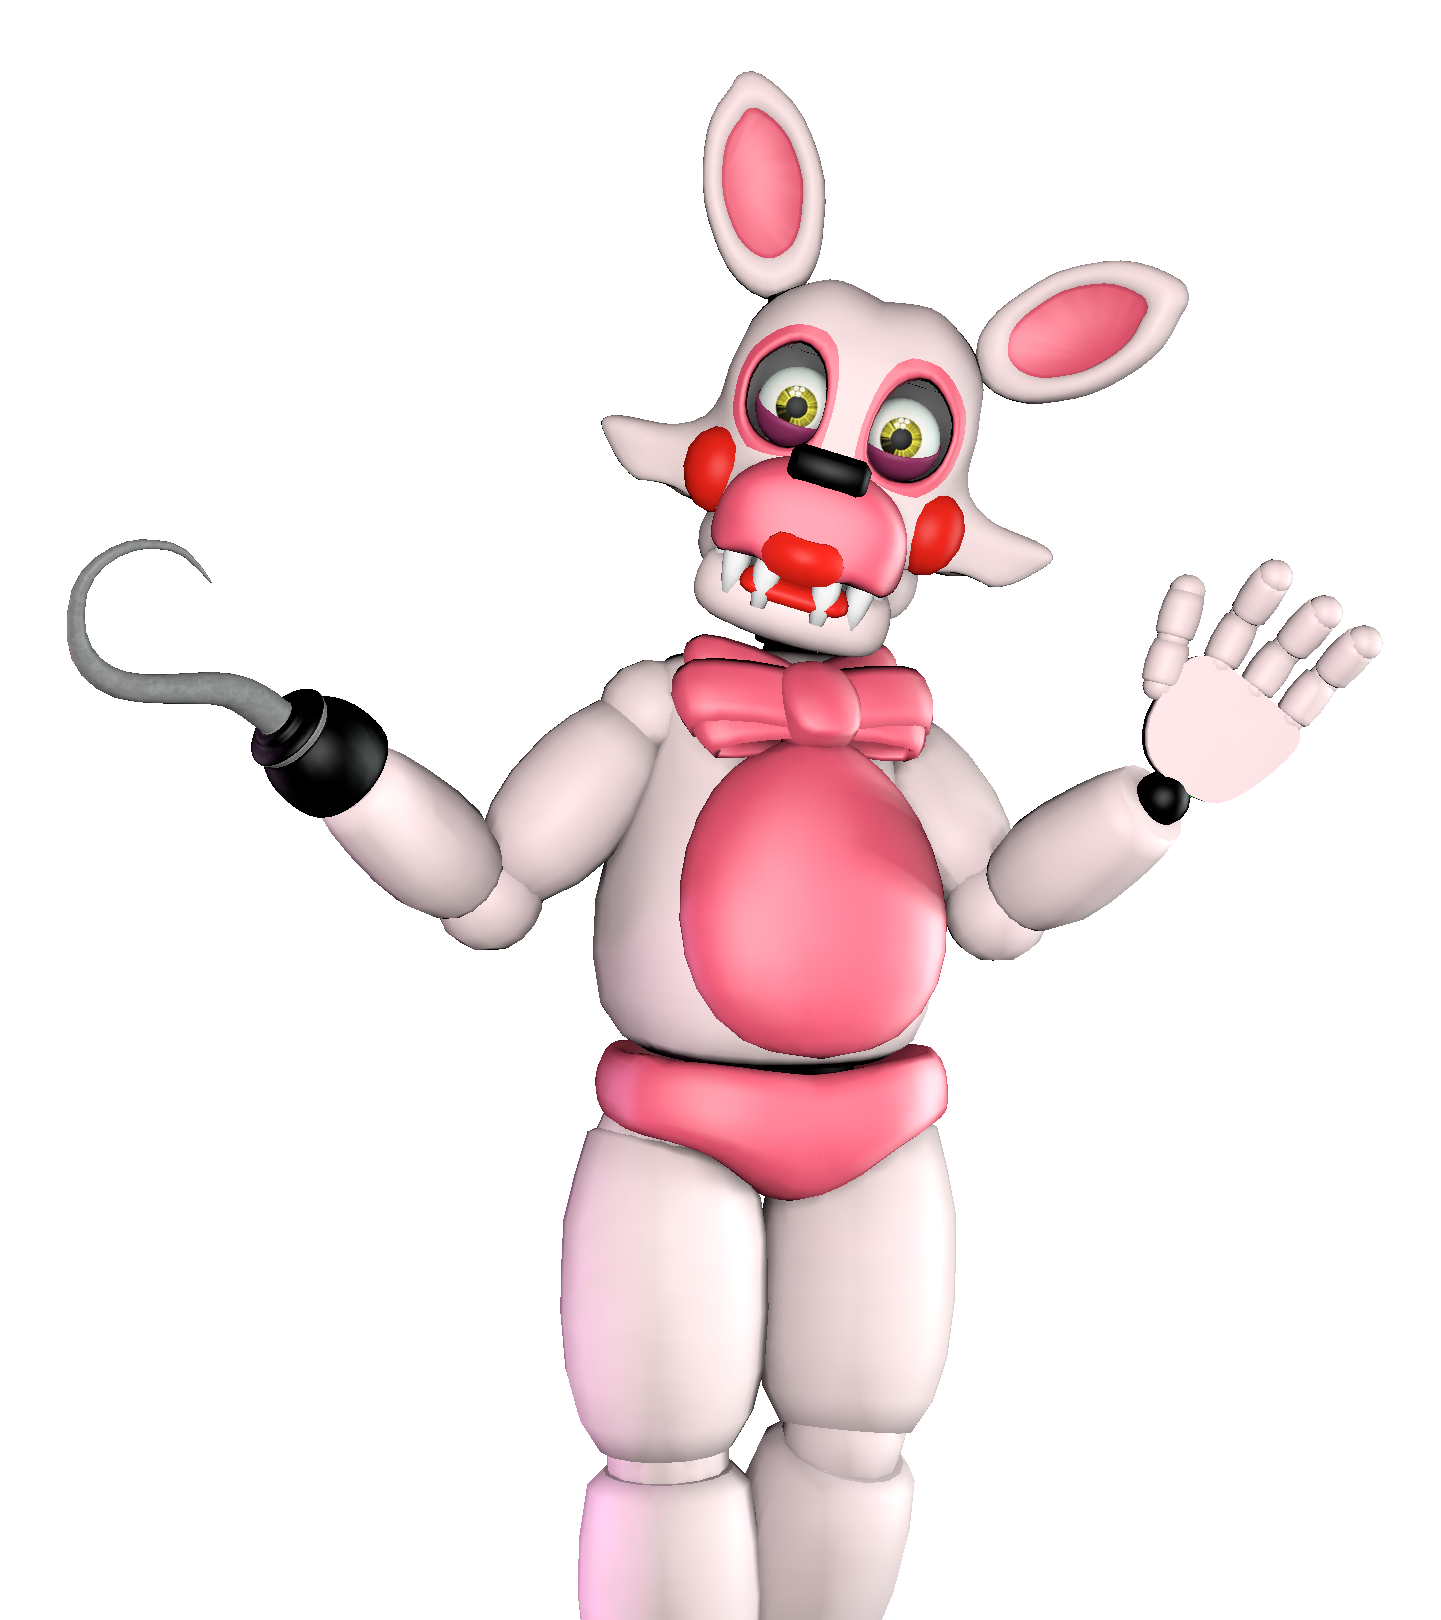 Mangle with the hook